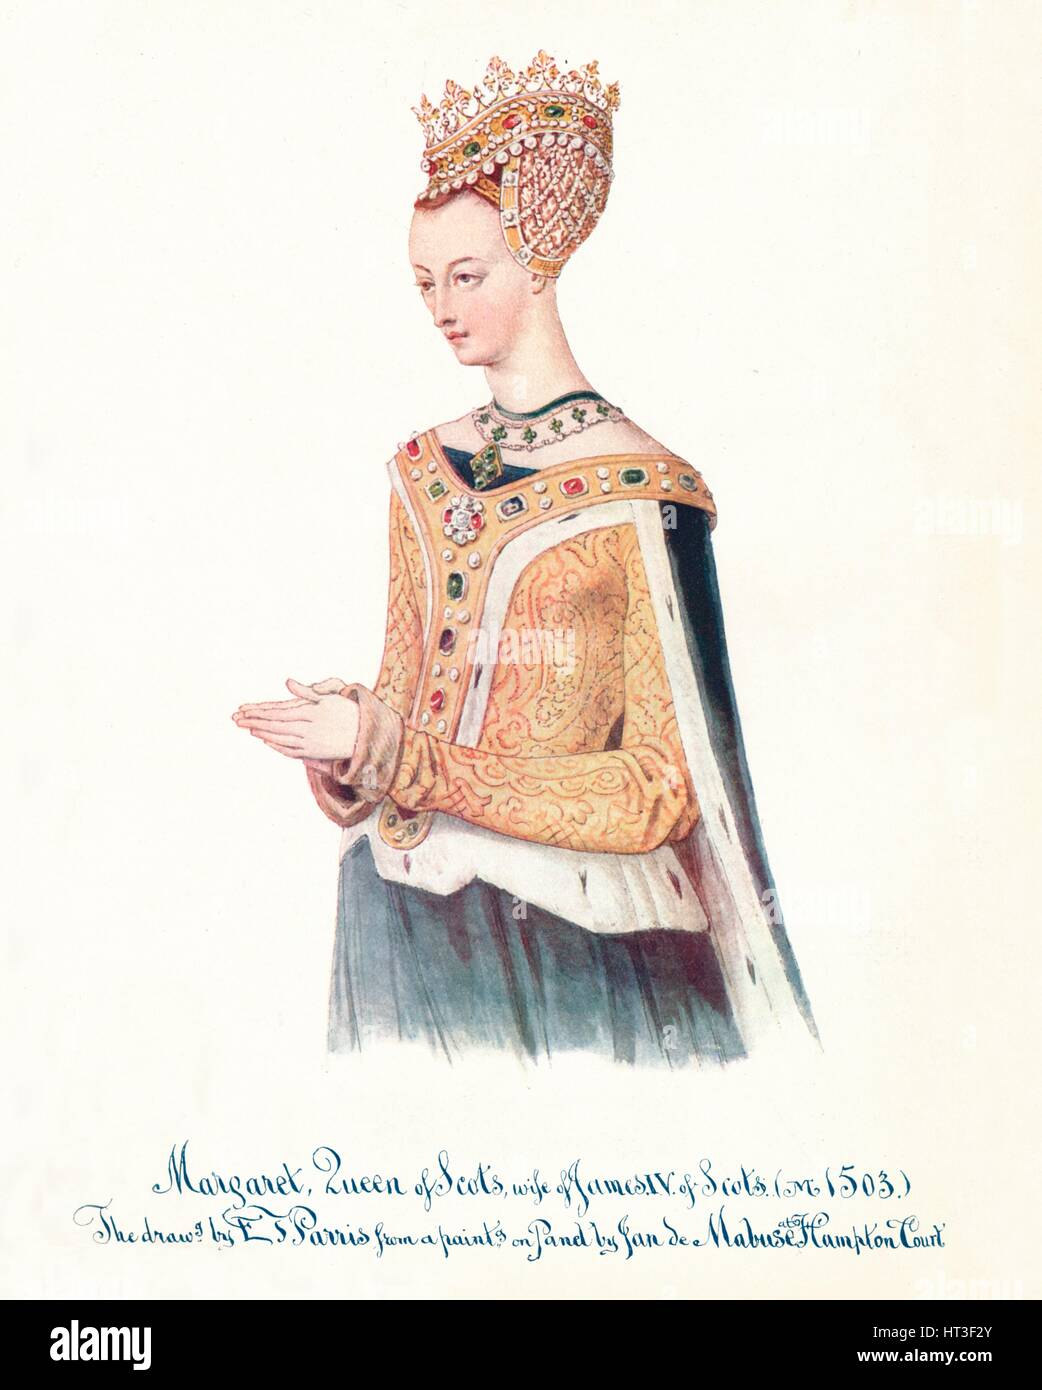 'Margaret, Queen of Scots, wife of James IV of Scots', 1912. Artist: Edmund Thomas Parris. - Stock Image